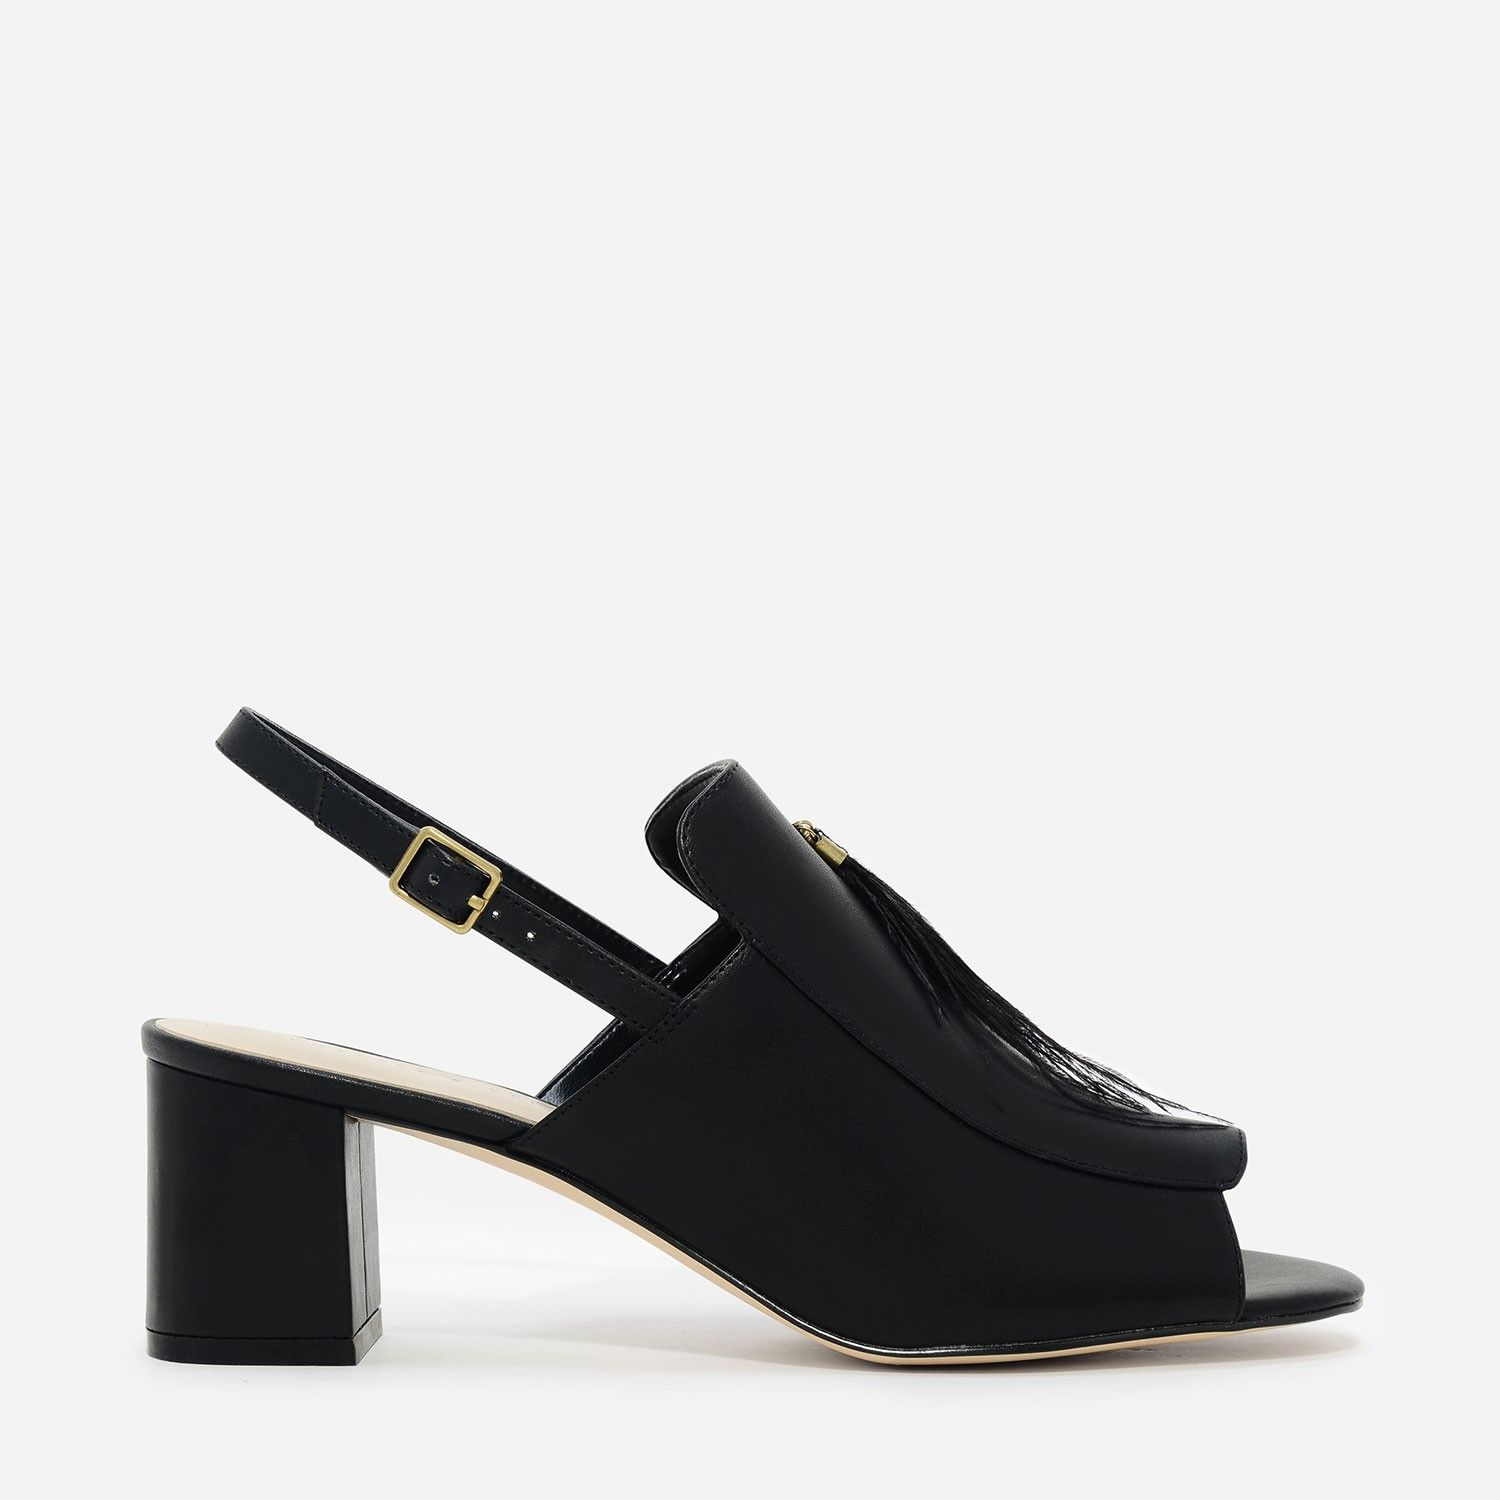 410dfb9a4d45 CHARLES   KEITH - Shoes. Black open-toe sandals featuring a chunky block  heel and feather accessory. Slingback strap fastens with a metal buckle  closure.